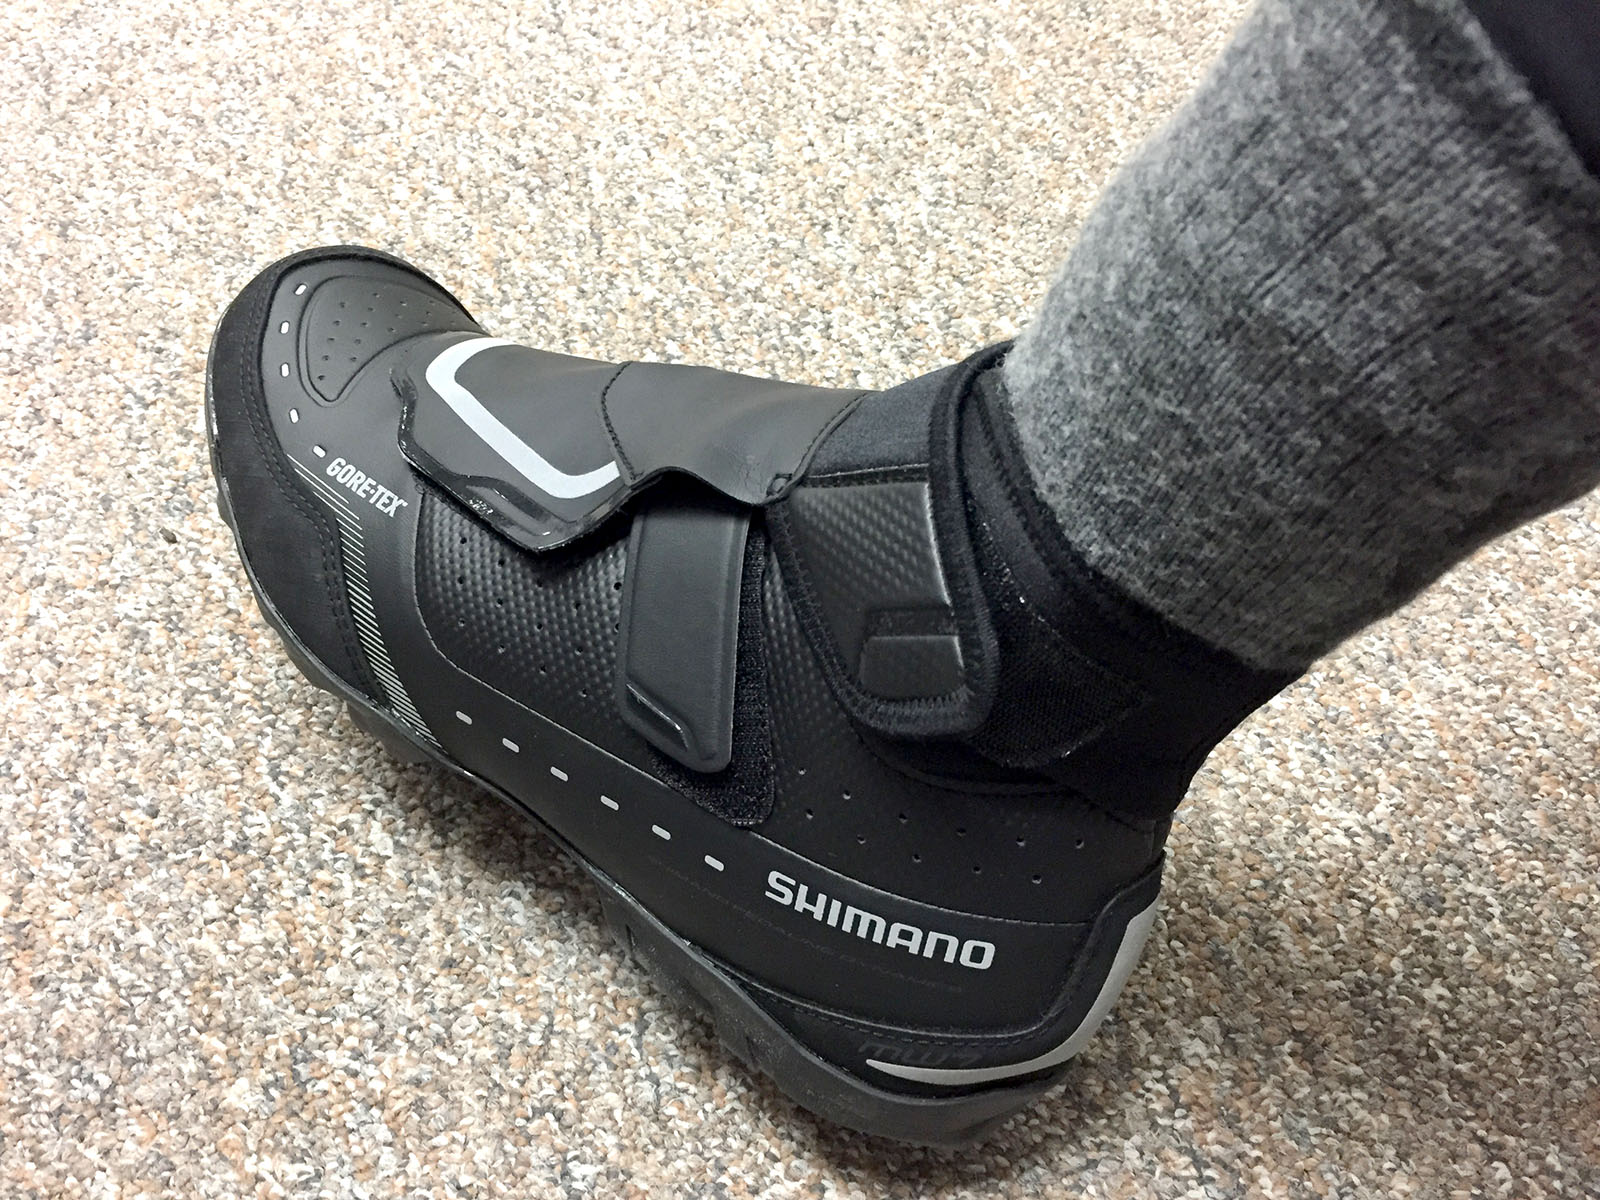 279160ab851 Winter Boots - Shimano MW7 2017/2018 - bucky rides